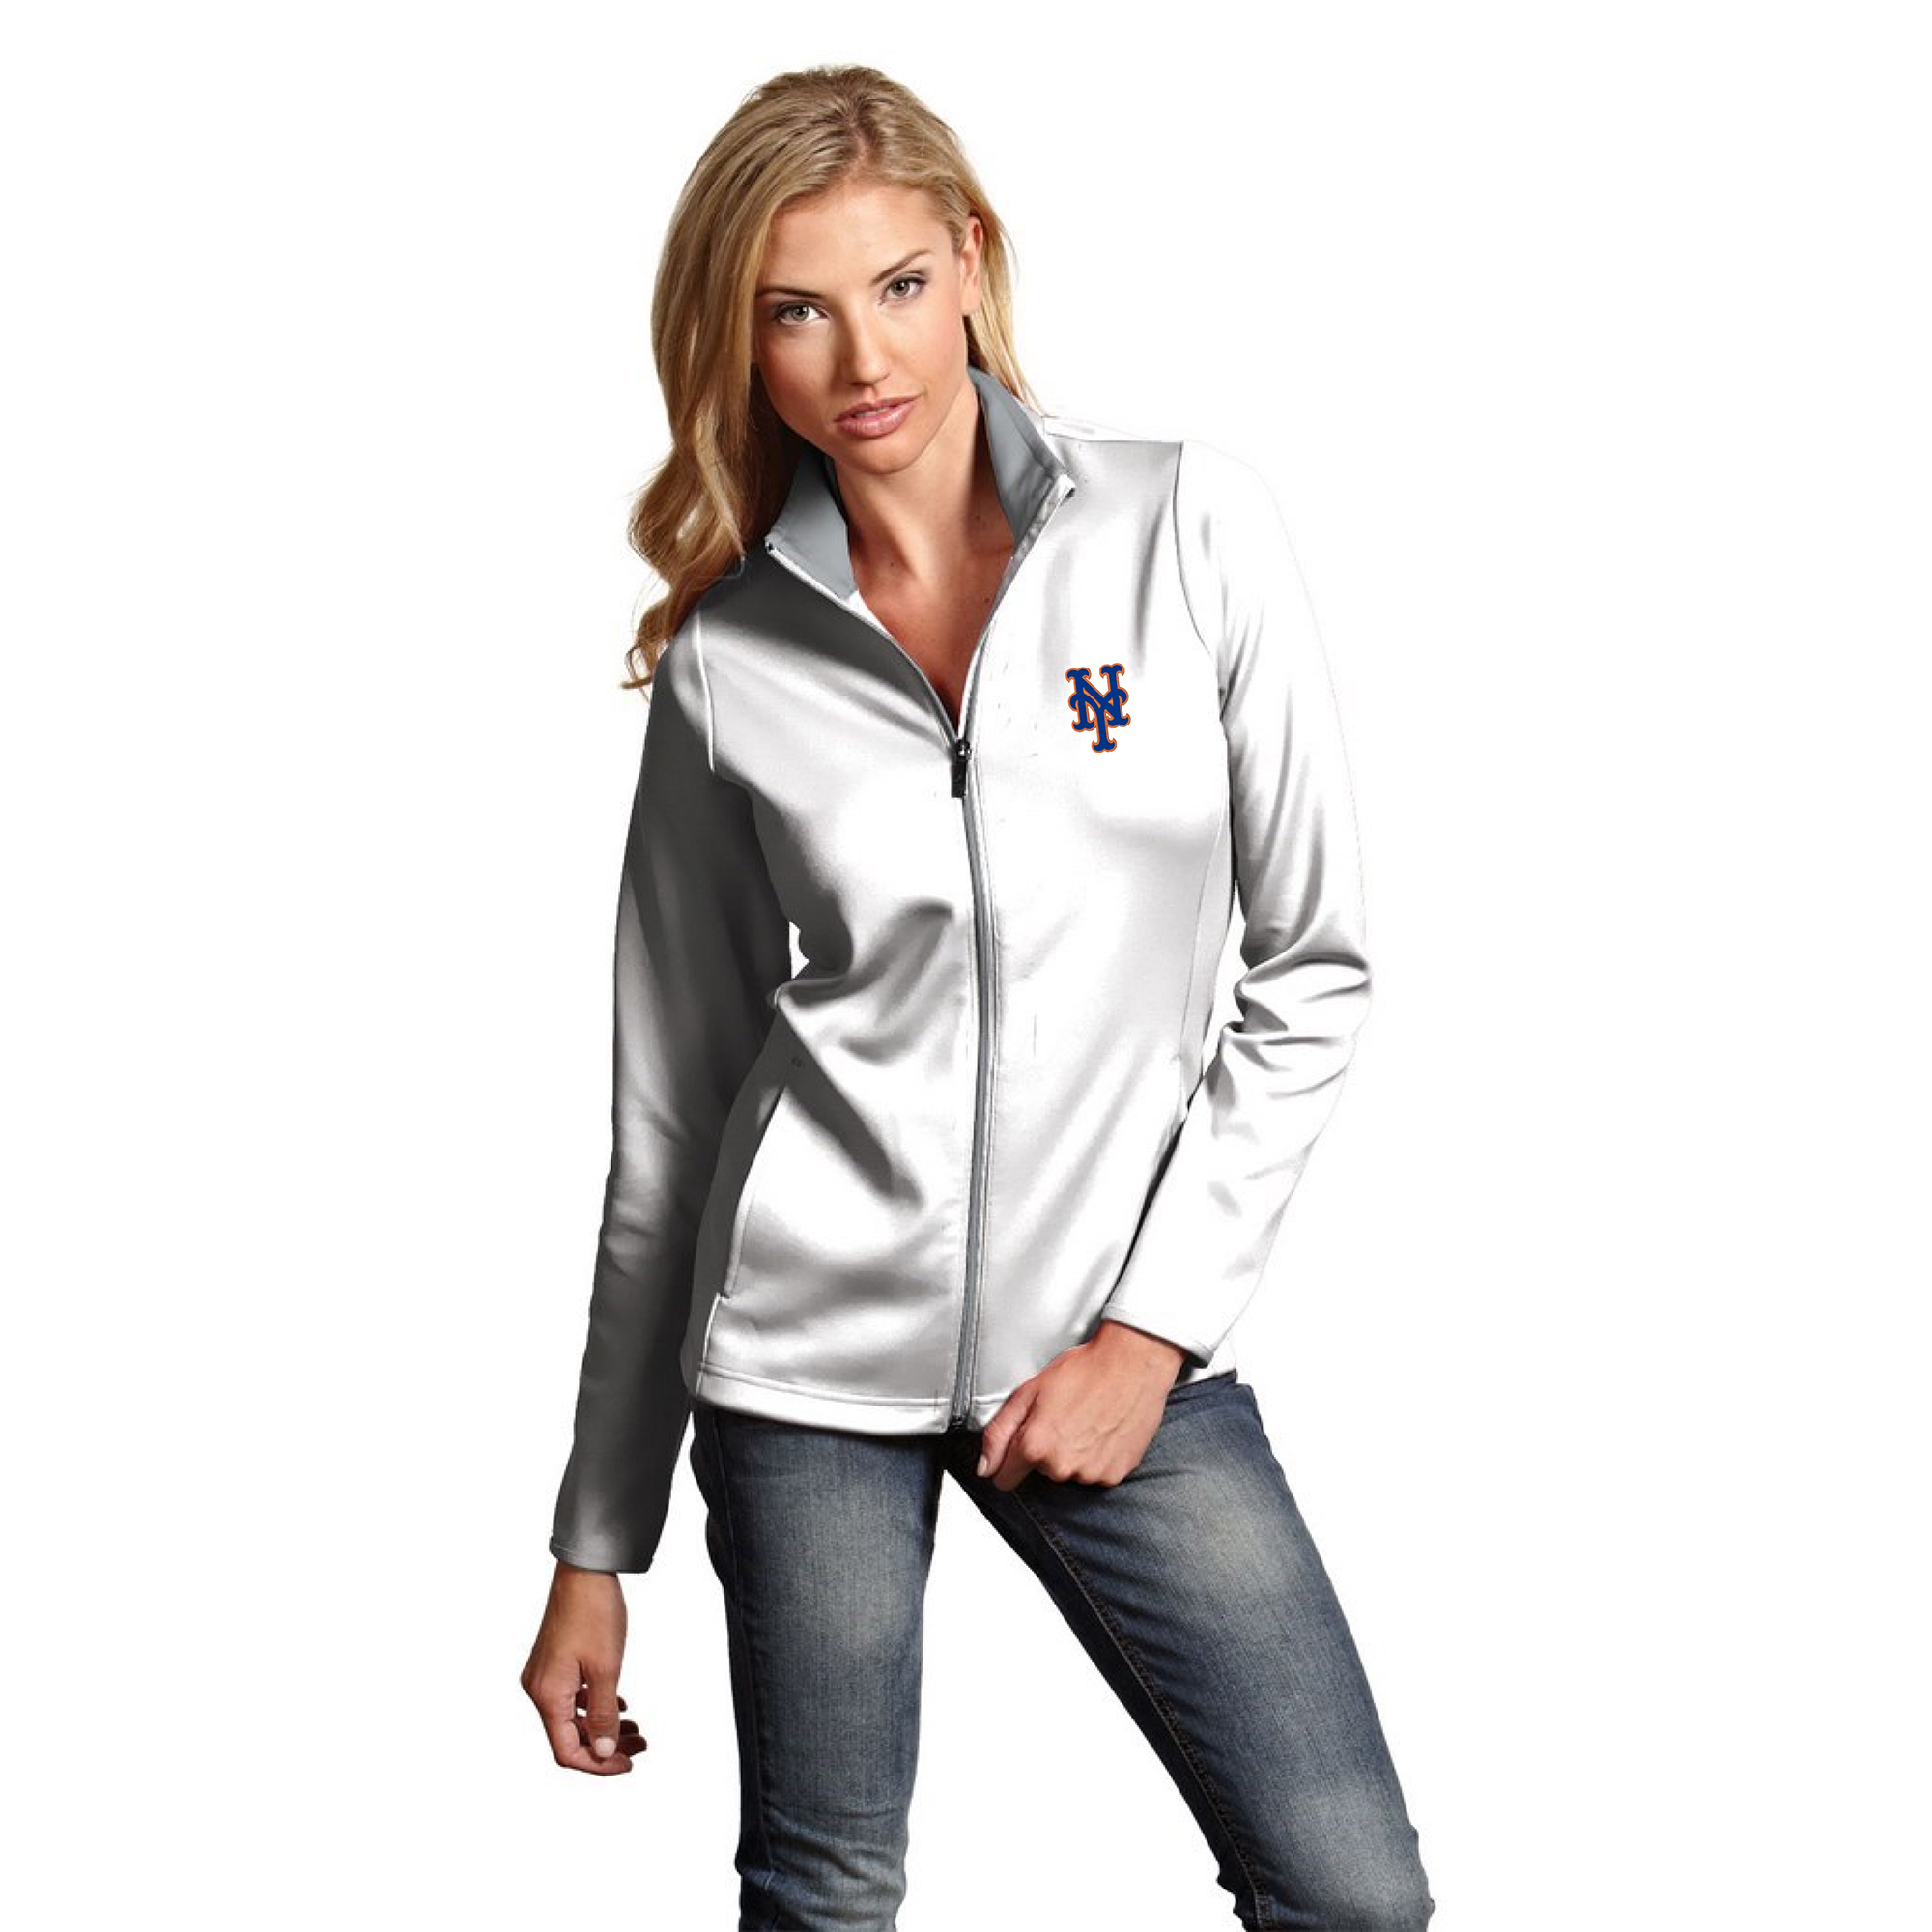 New York Mets Antigua Women's Leader Full-Zip Jacket White by ANTIGUA GROUP/ 22534